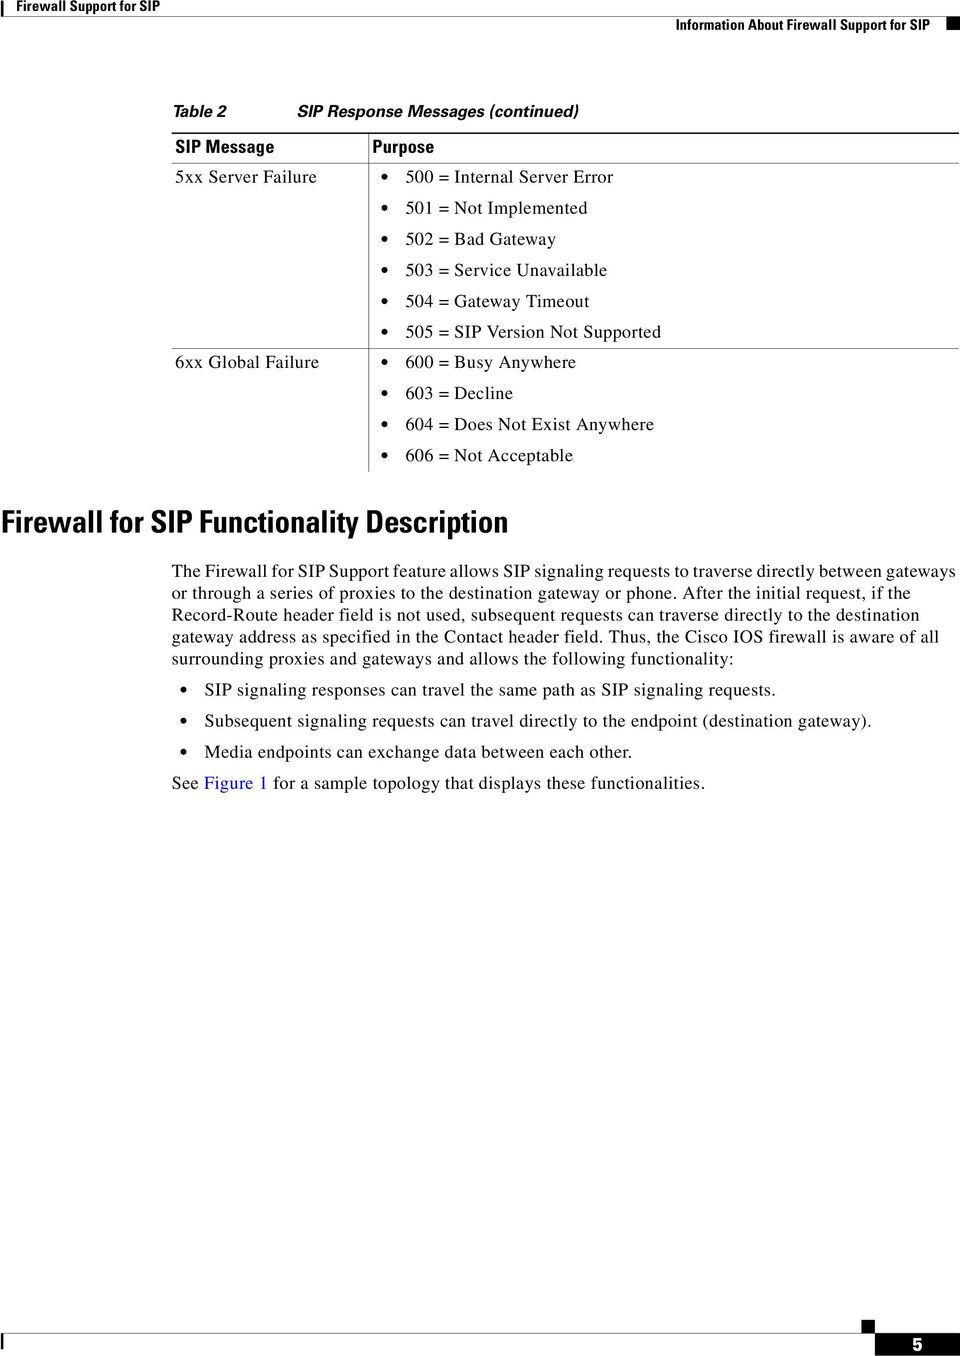 Firewall Support for SIP - PDF